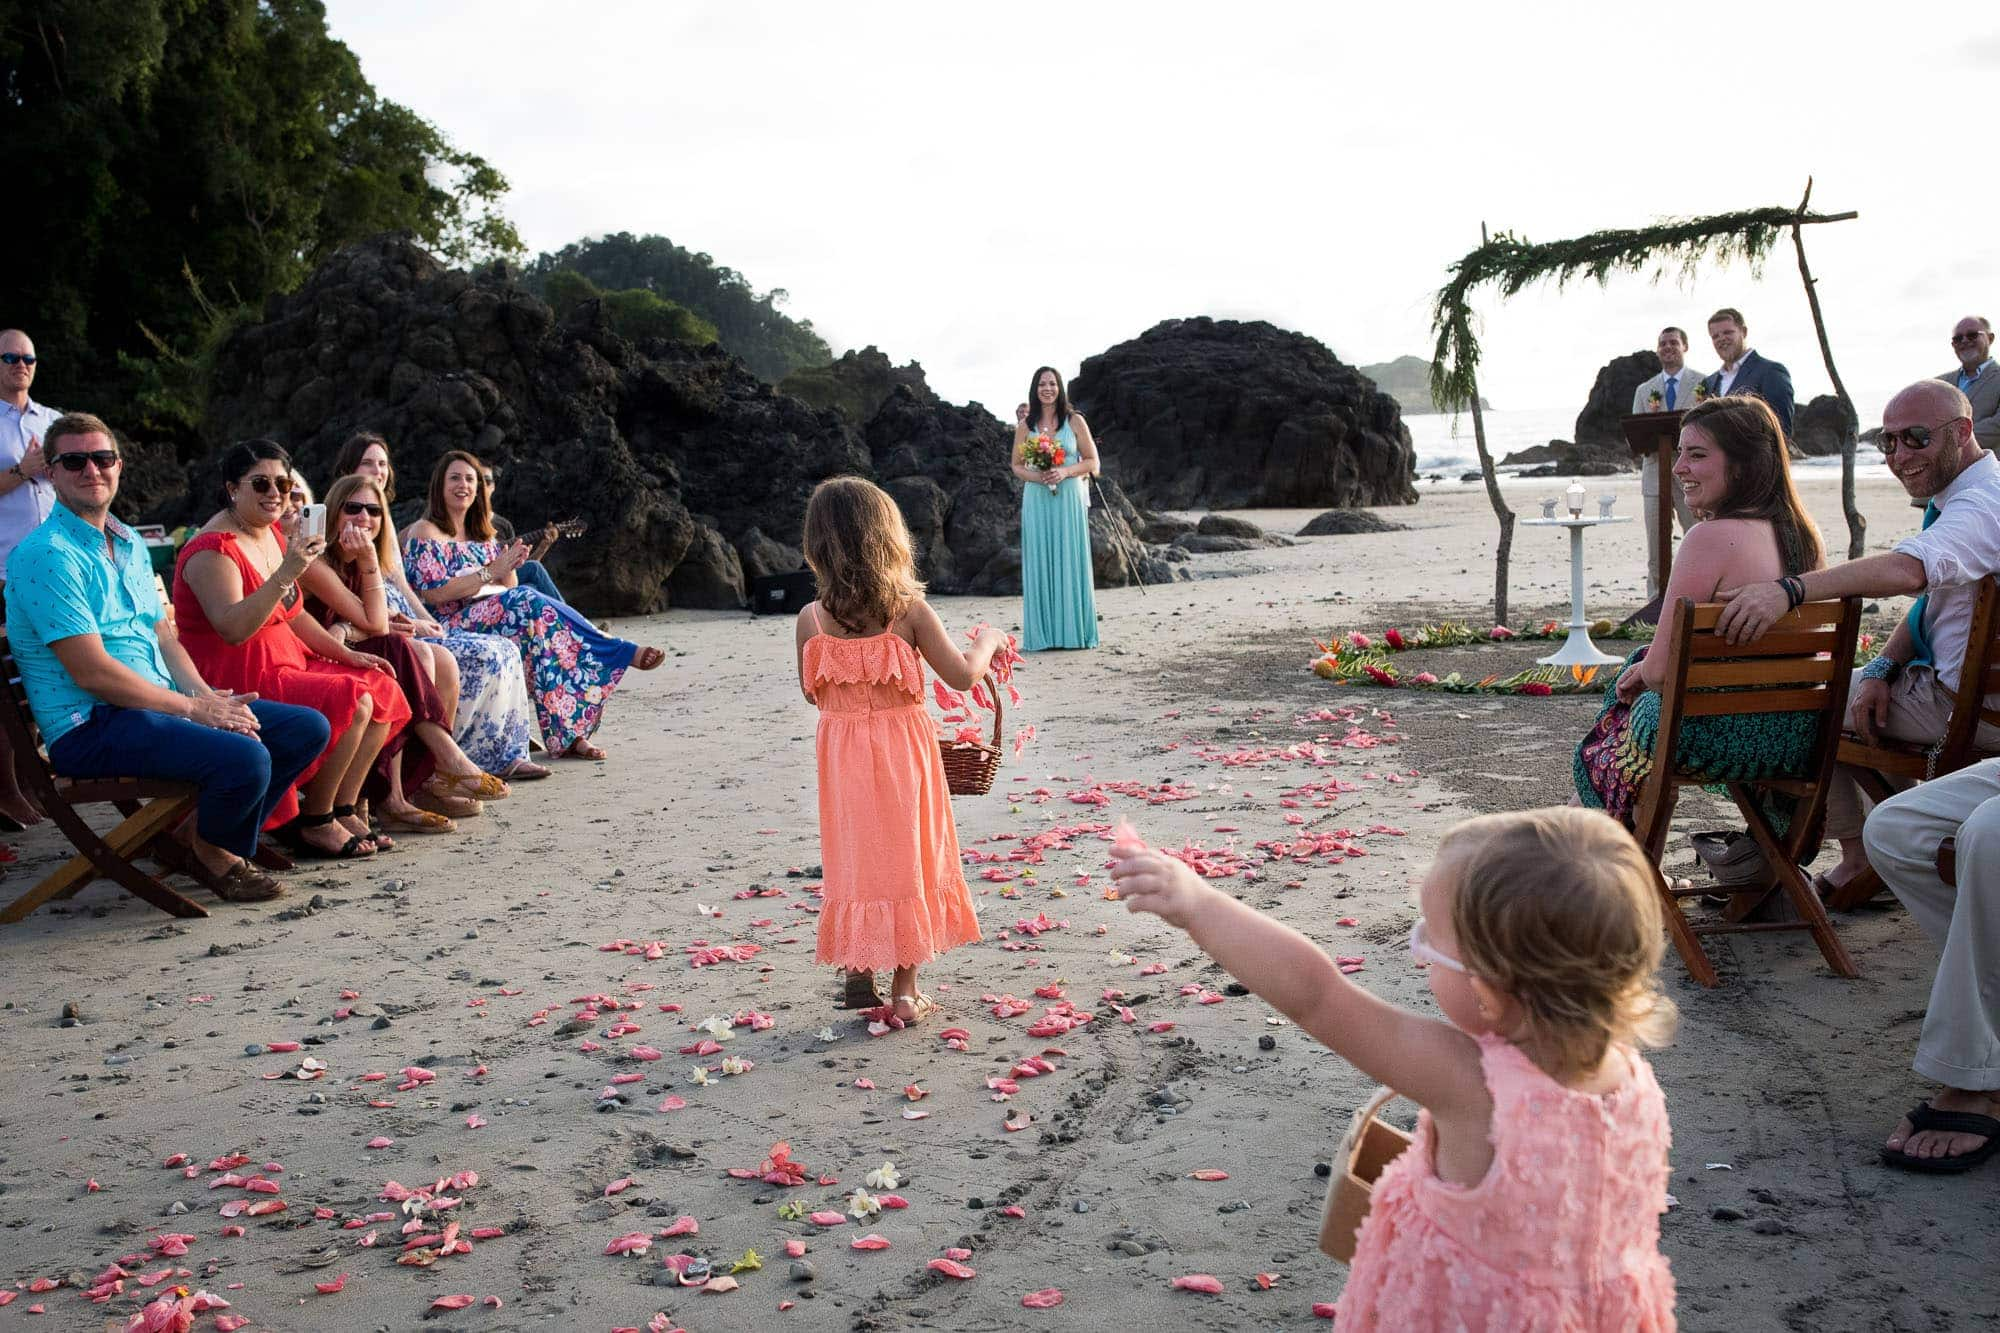 The flower girl leading the way with pretty pink petals